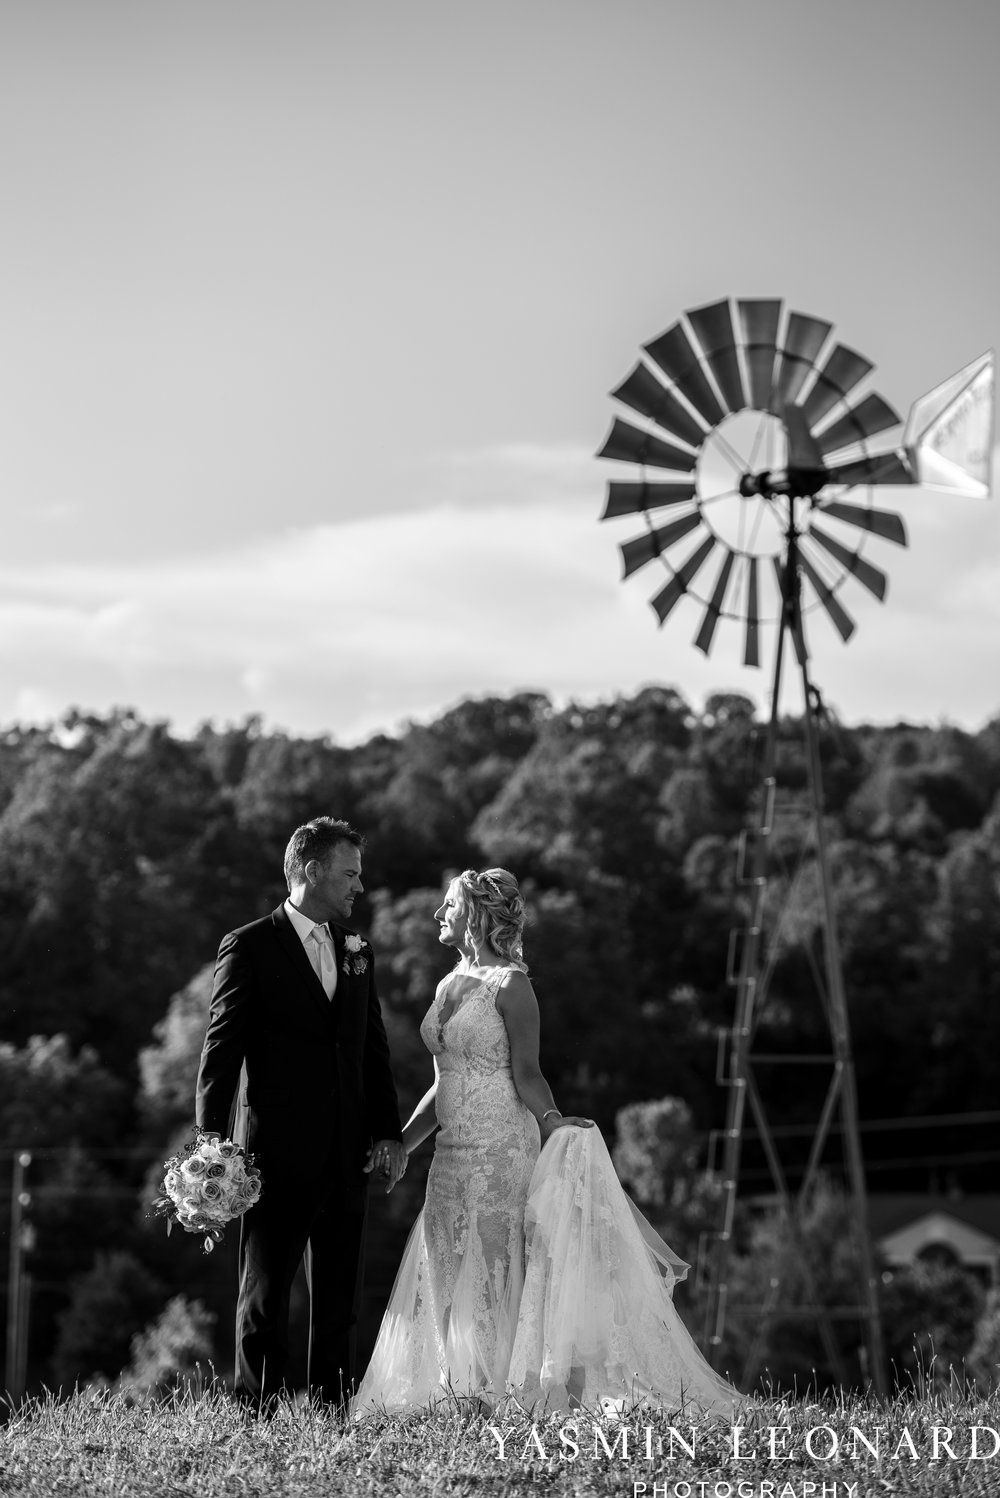 Elkin Creek Vineyard - Elkin Creek Weddings - NC Wine - NC Wineries - NC Weddings - NC Photographers - NC Wedding Photographer - NC Winery Wedding Ideas - Yasmin Leonard Photography - High Point Wedding Photographer-60.jpg